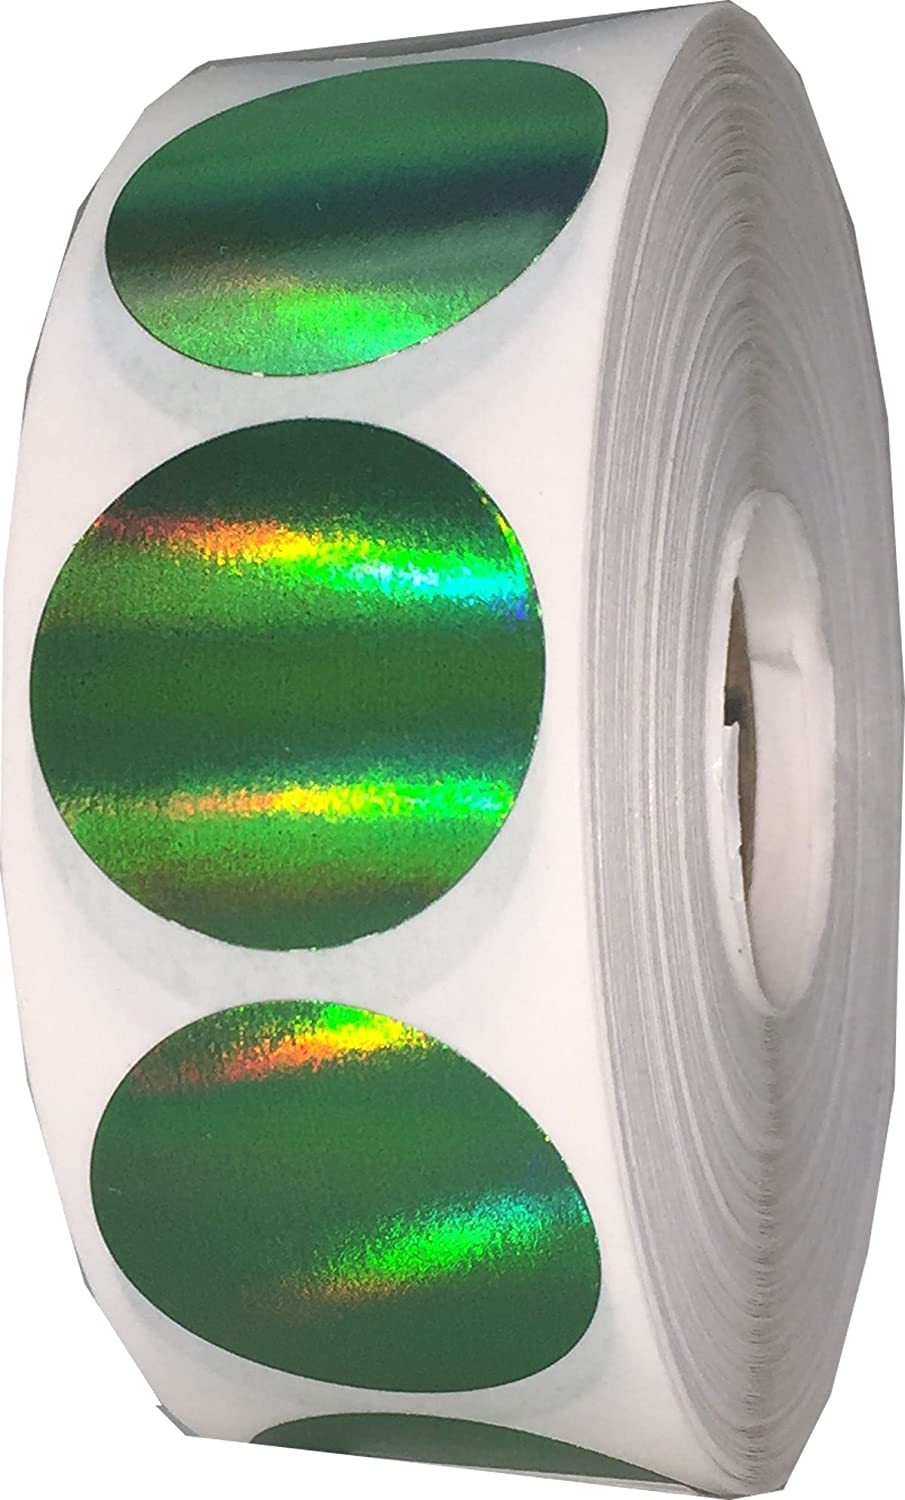 Green Holographic Color 35% OFF Coding Labels Inventory for Tulsa Mall Organizing 1